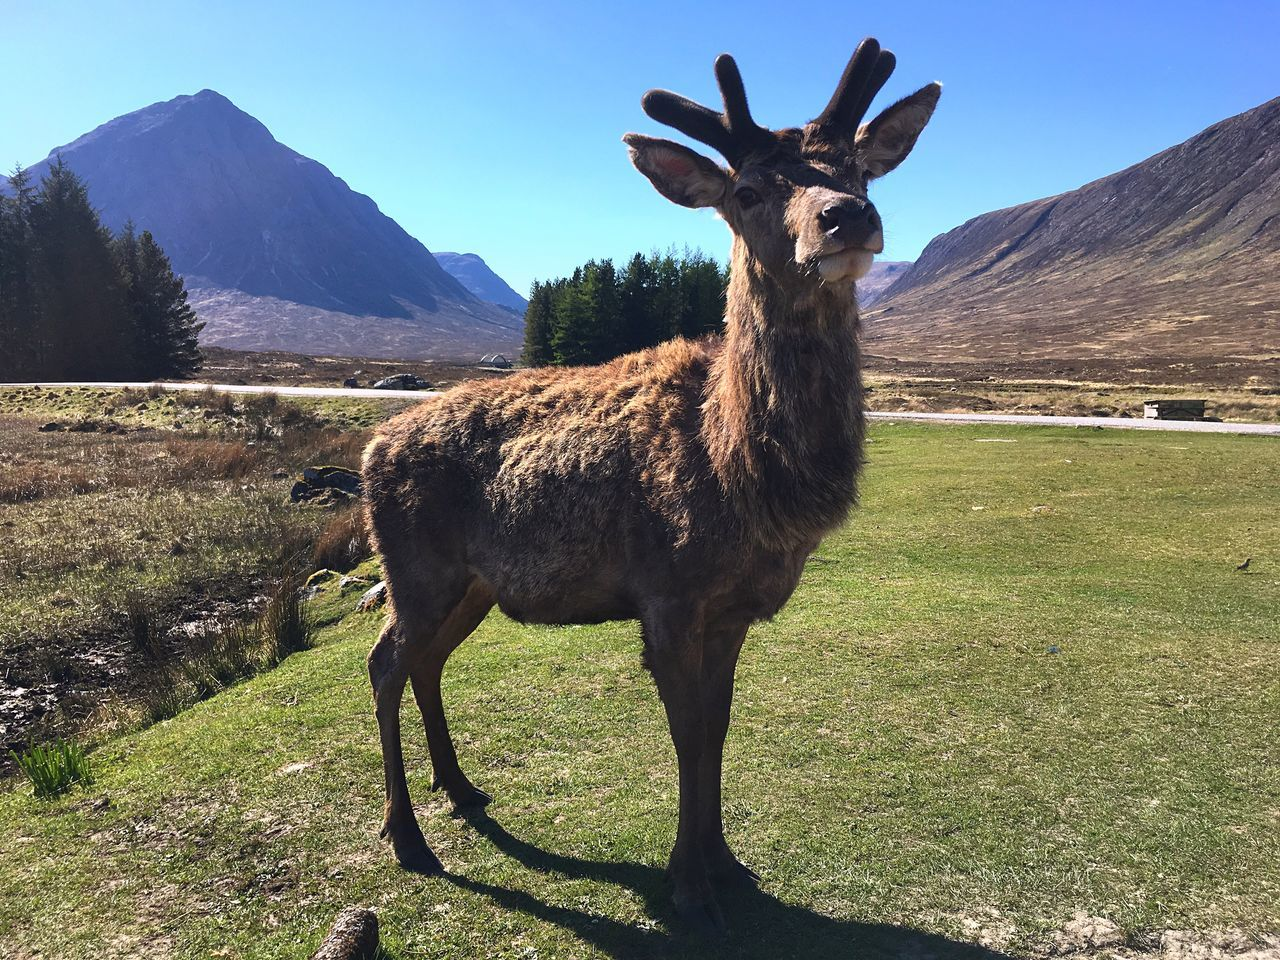 animal themes, mountain, grass, one animal, day, field, nature, mammal, outdoors, standing, mountain range, domestic animals, no people, landscape, green color, animals in the wild, sunlight, beauty in nature, llama, livestock, scenics, sky